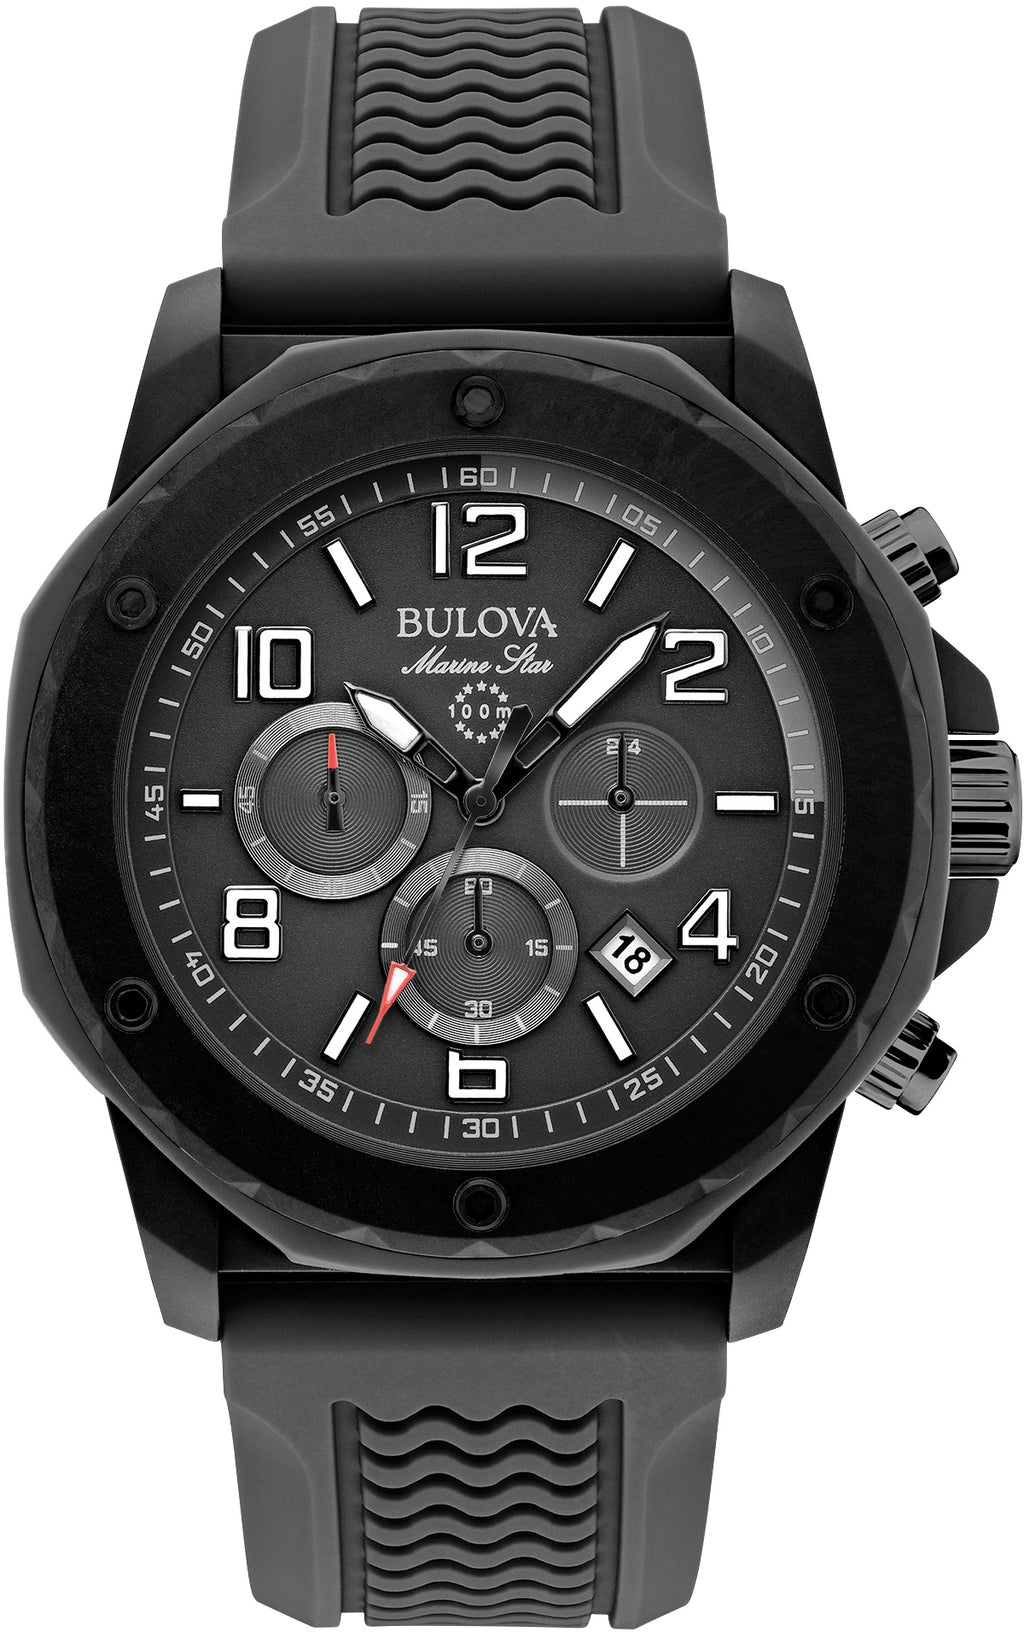 Marine Star Chronograph All Black